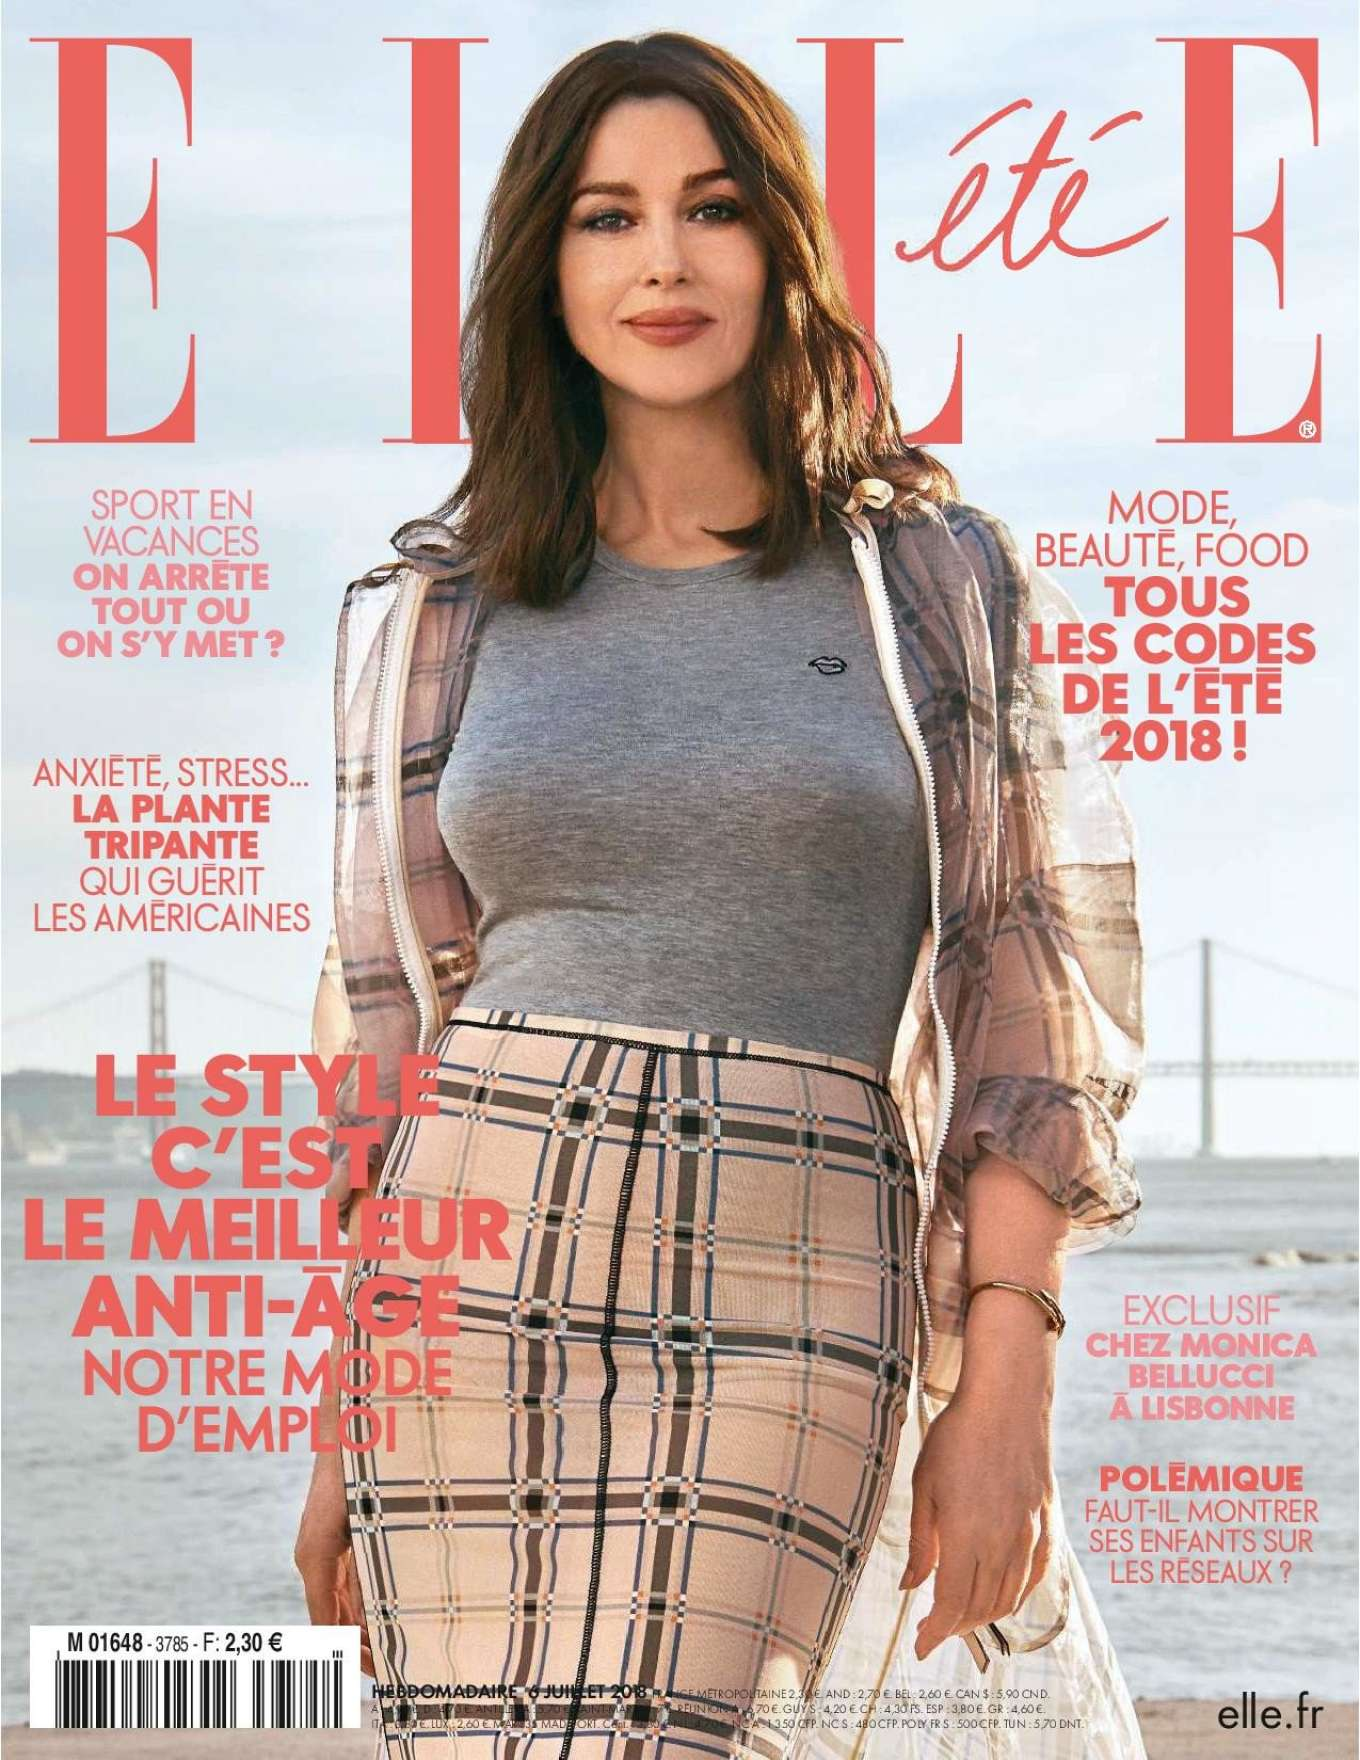 Monica Bellucci 2018 : Monica Bellucci: Elle France 2018 -18